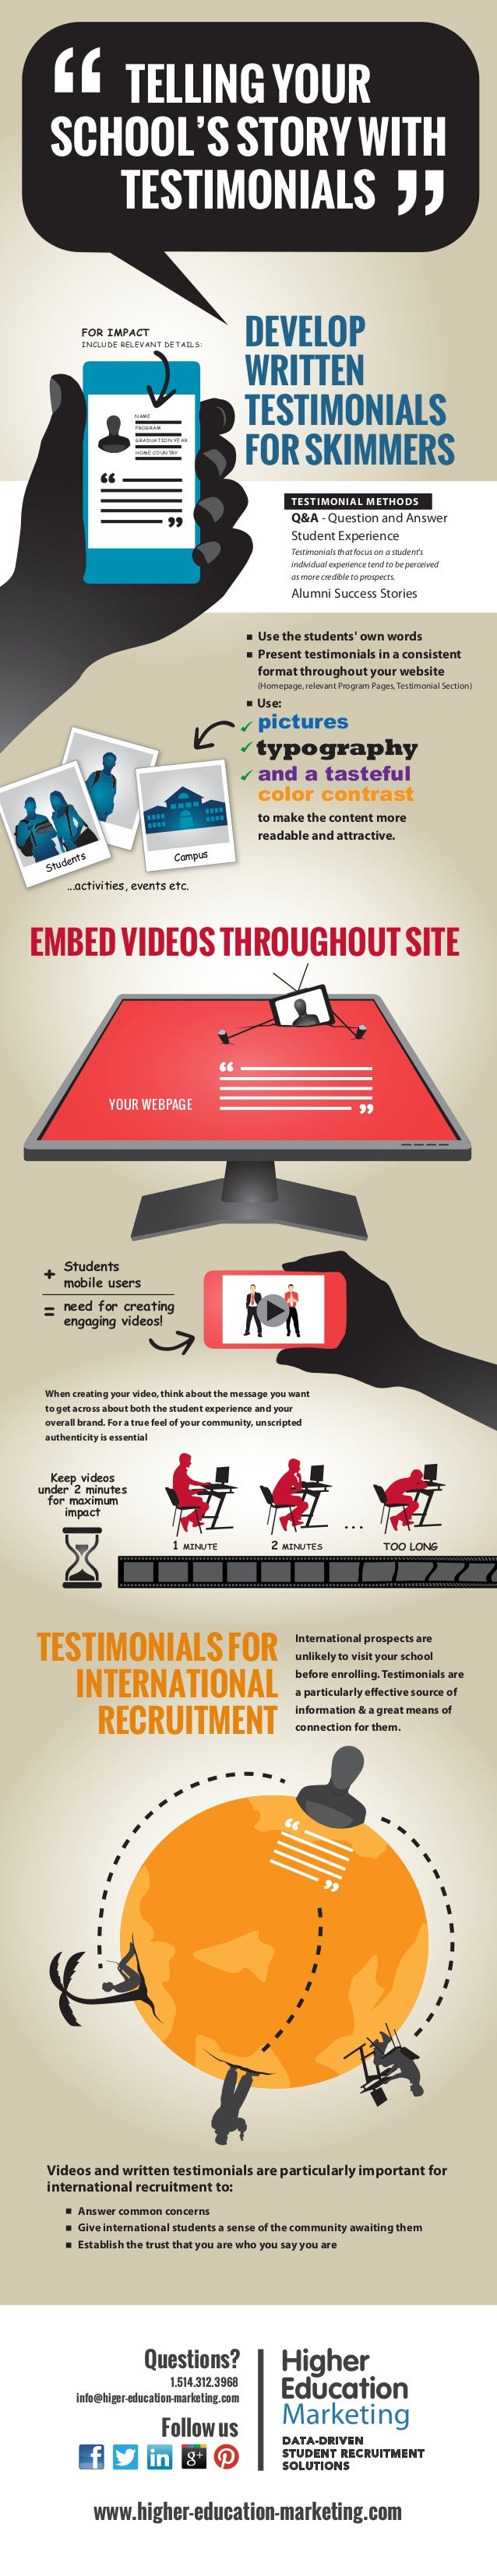 INFOGRAPHIC - Telling Your School's Story With Testimonials